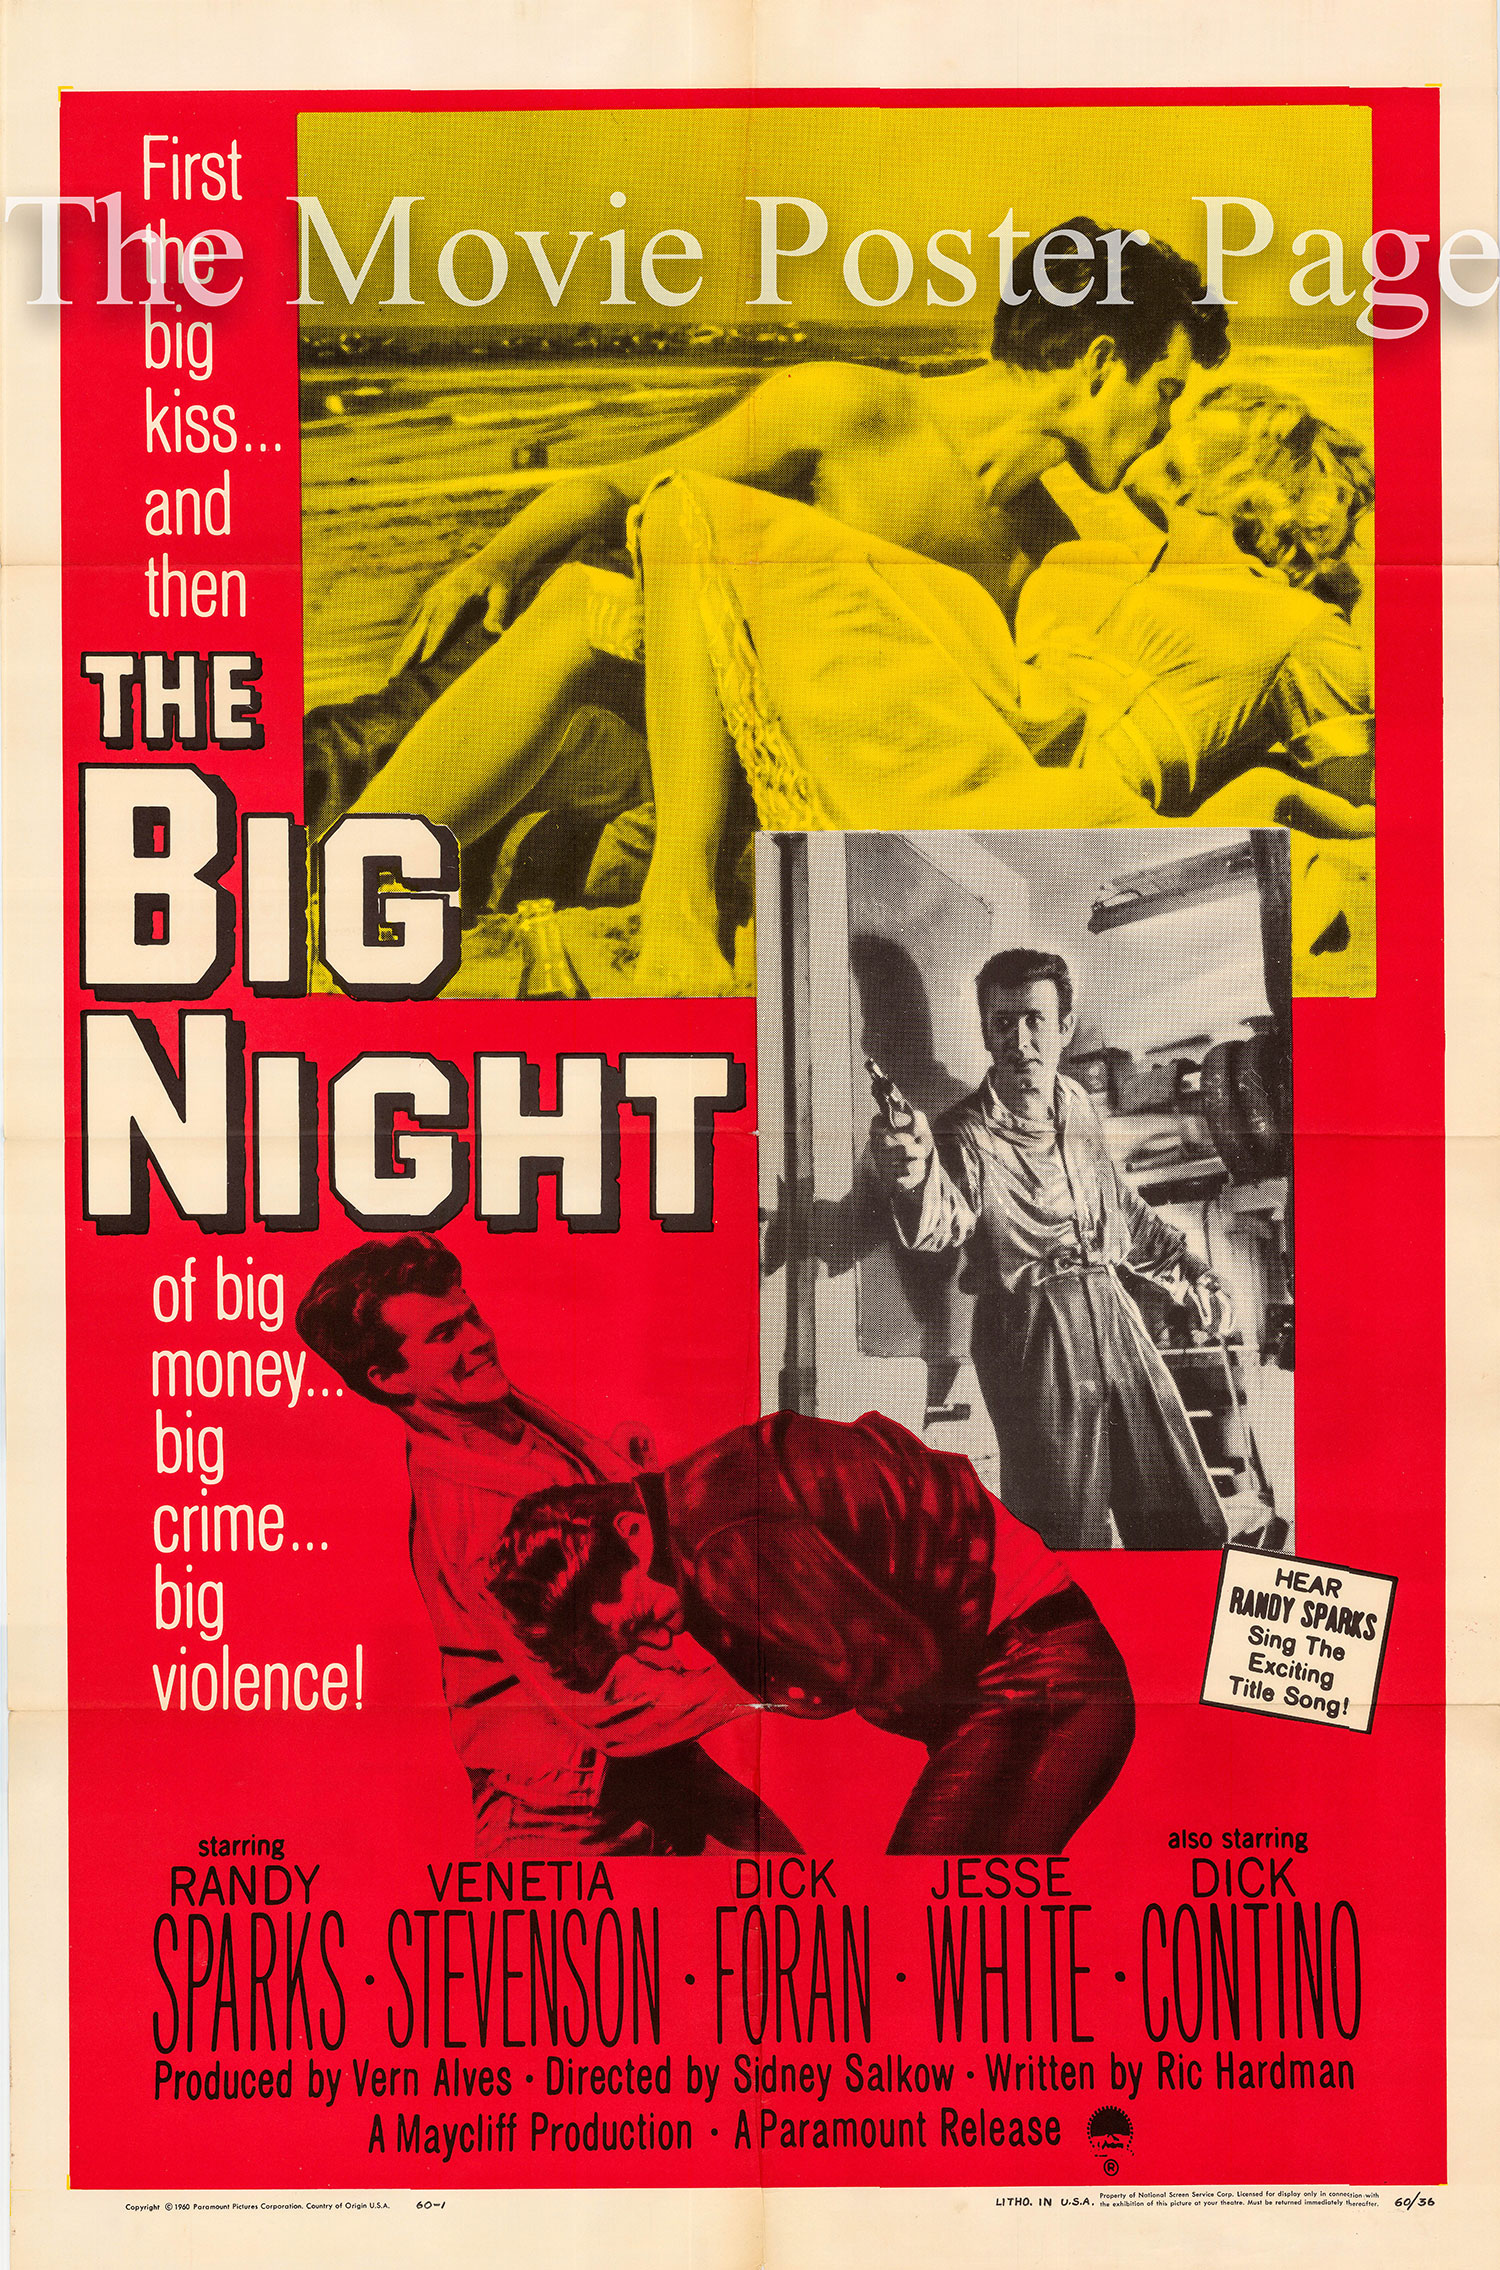 Pictured is a US one-sheet poster for the 1960 Sidney Salkow film The Big Night starring Randy Sparks.